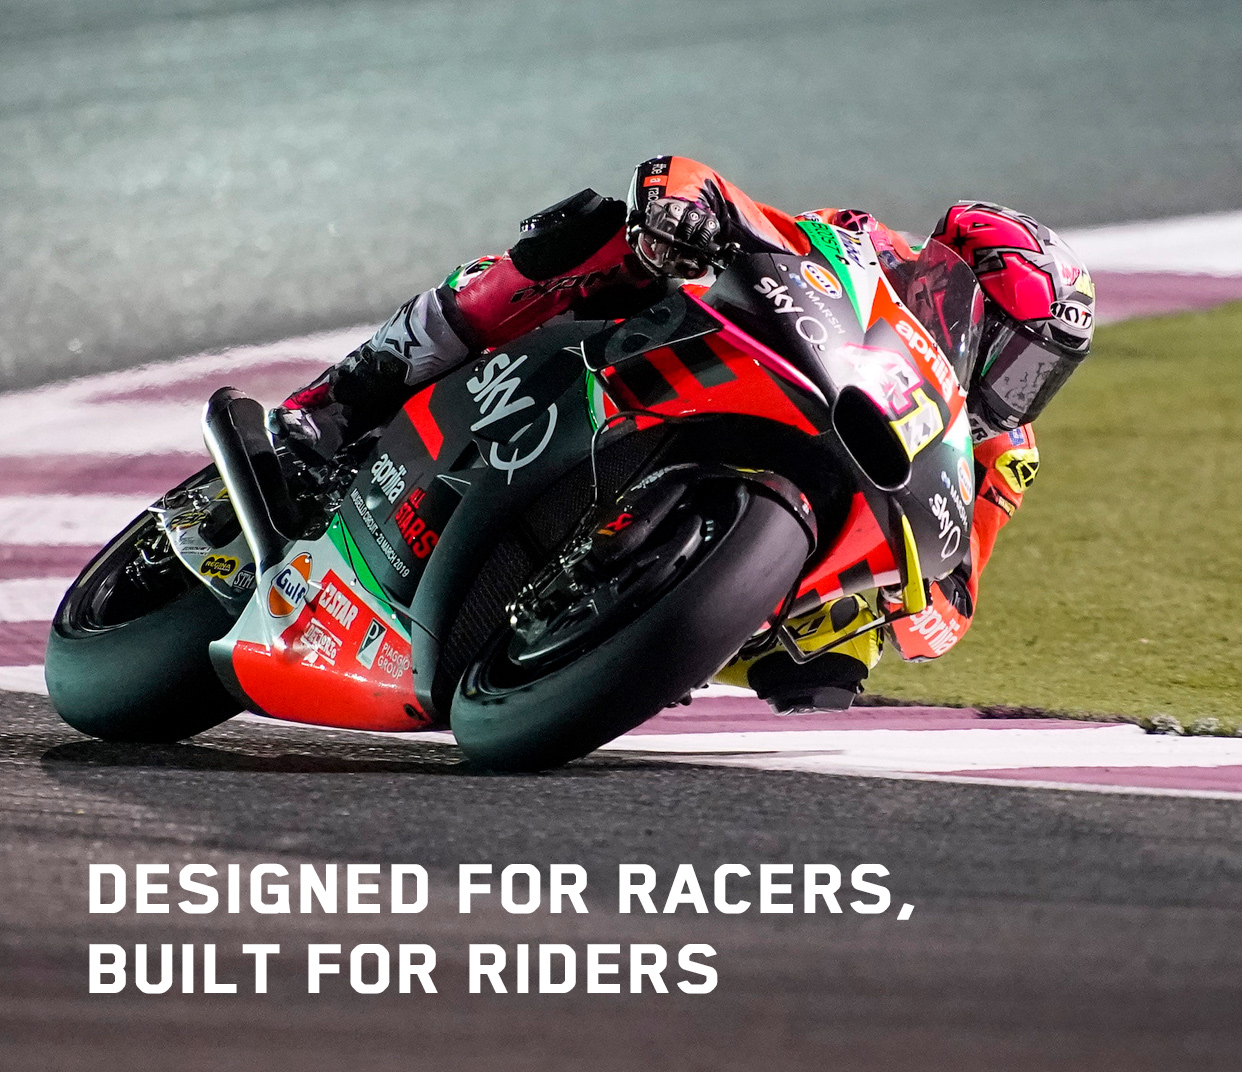 DESIGNED FOR RACERS,BUILT FOR RIDERS